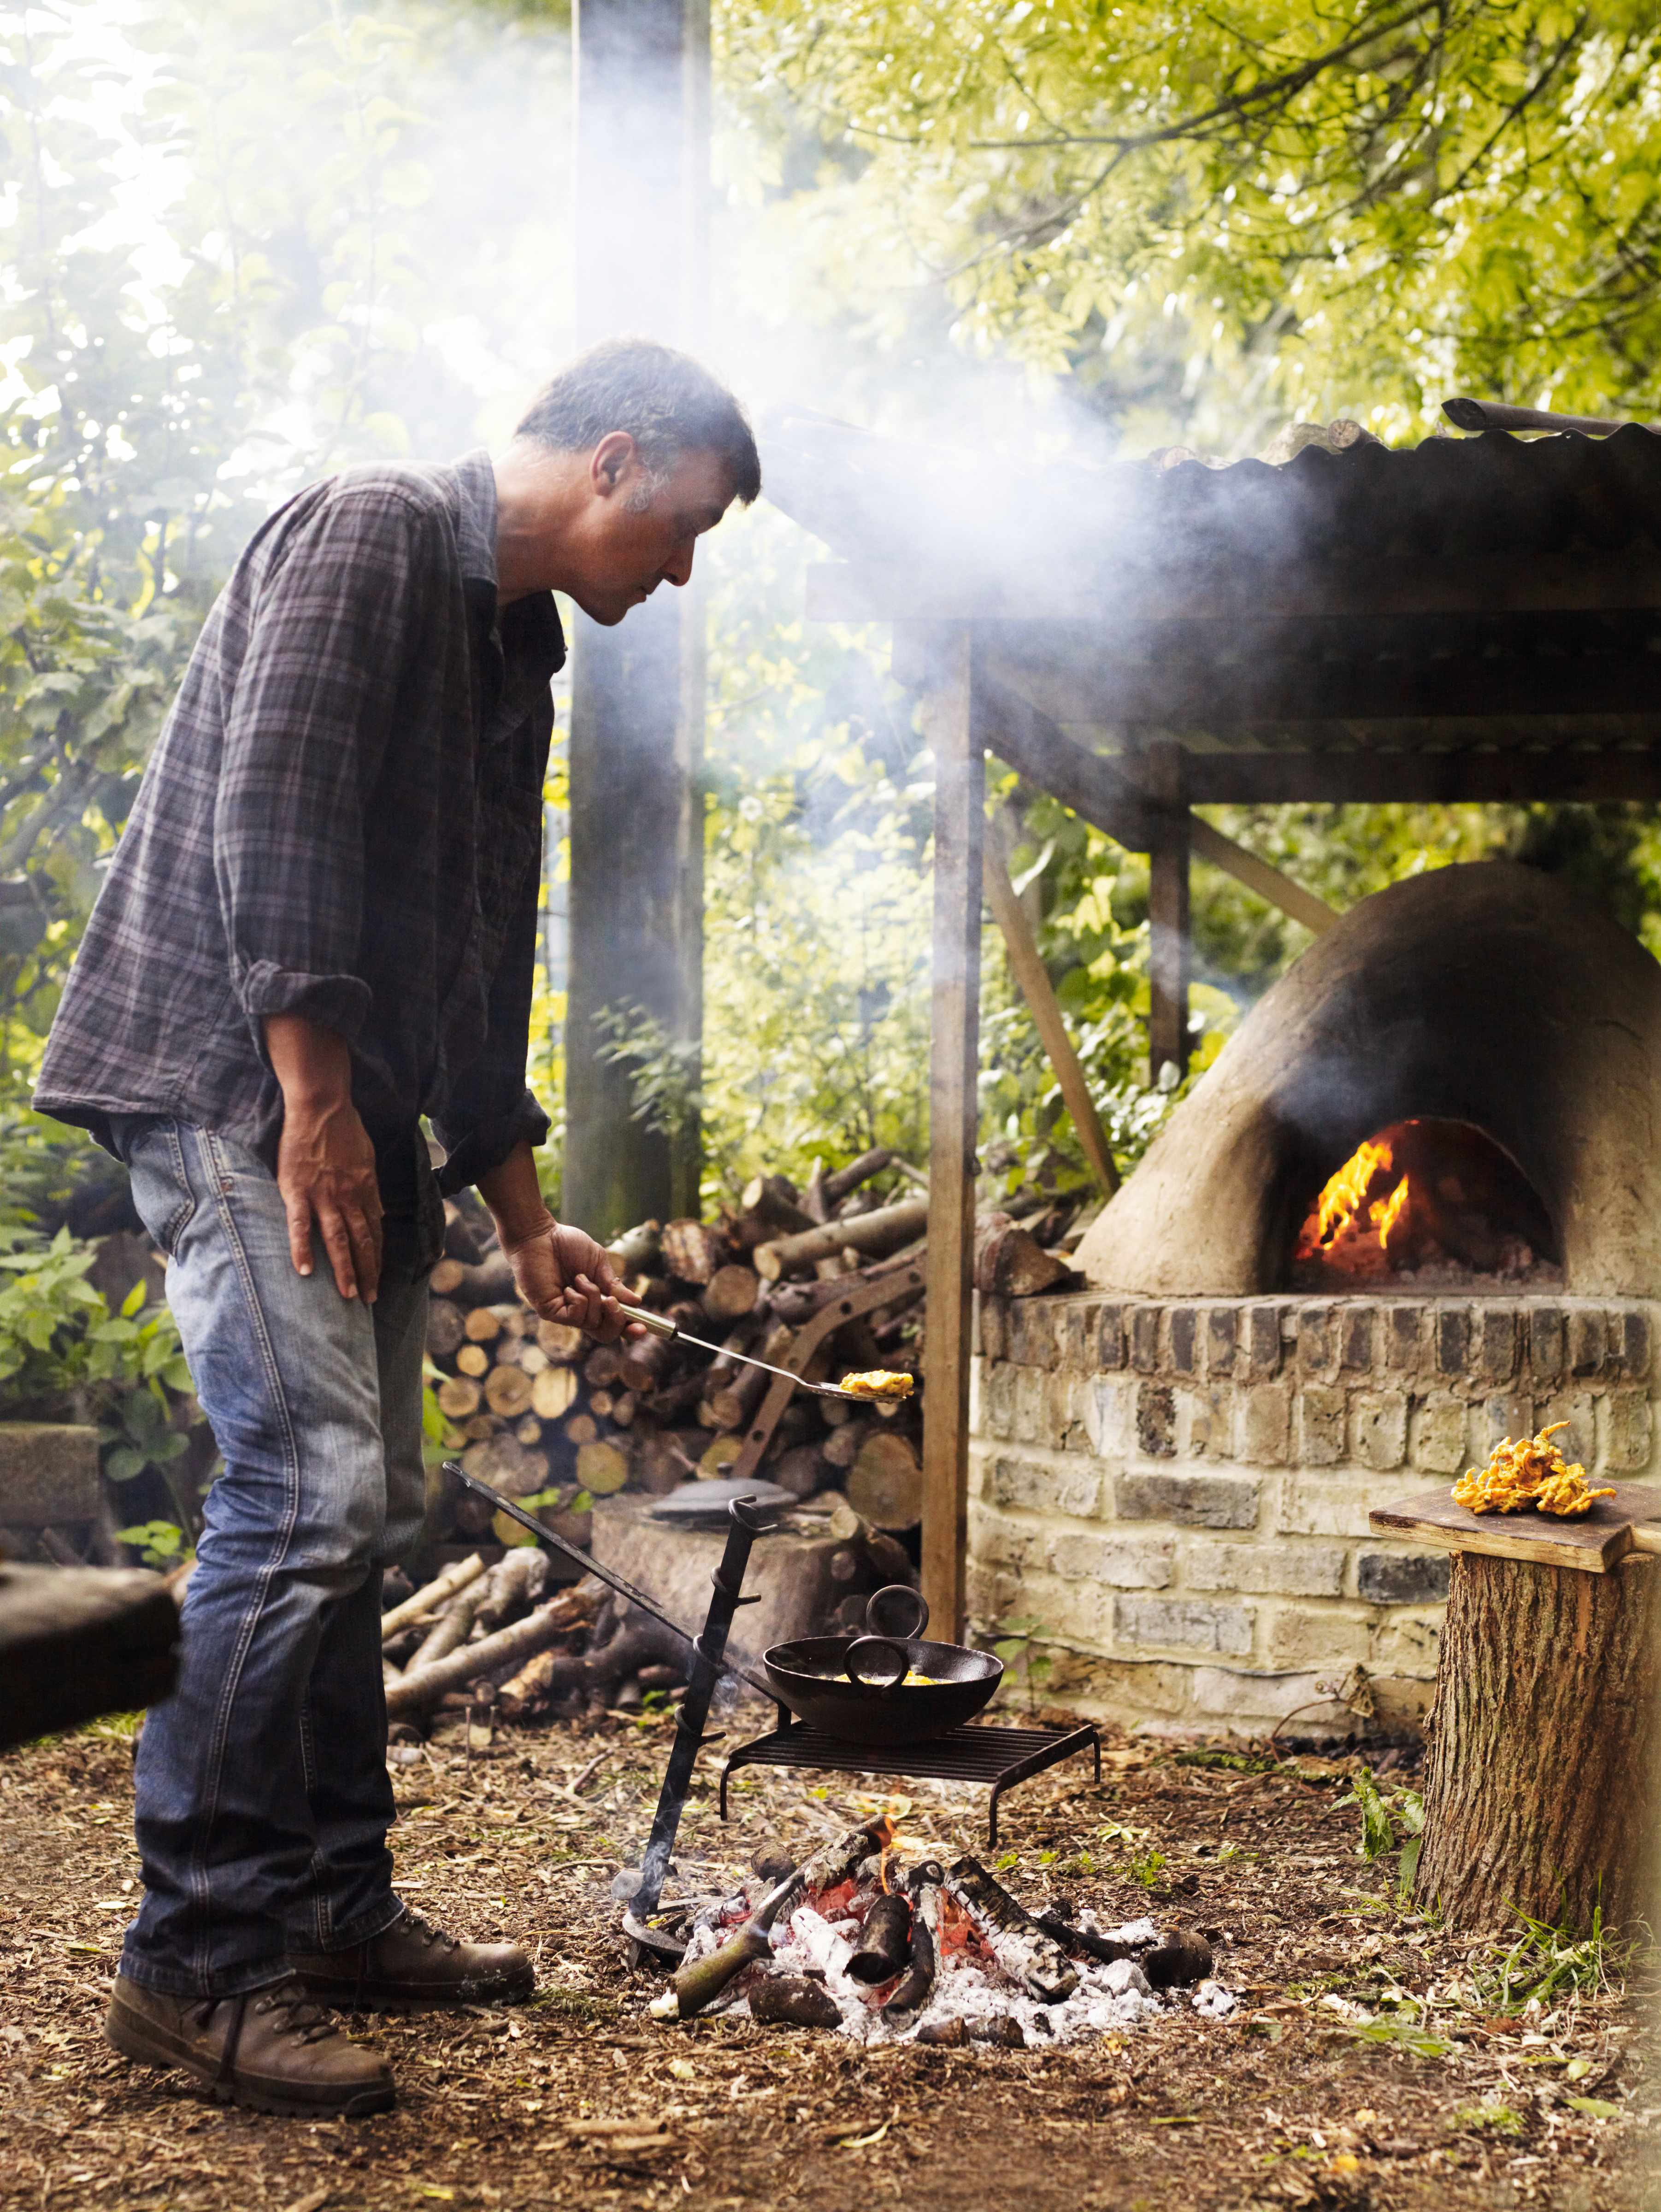 Garden designer Cleve West shares recipes cooked on an outdoor fire on his allotment garden